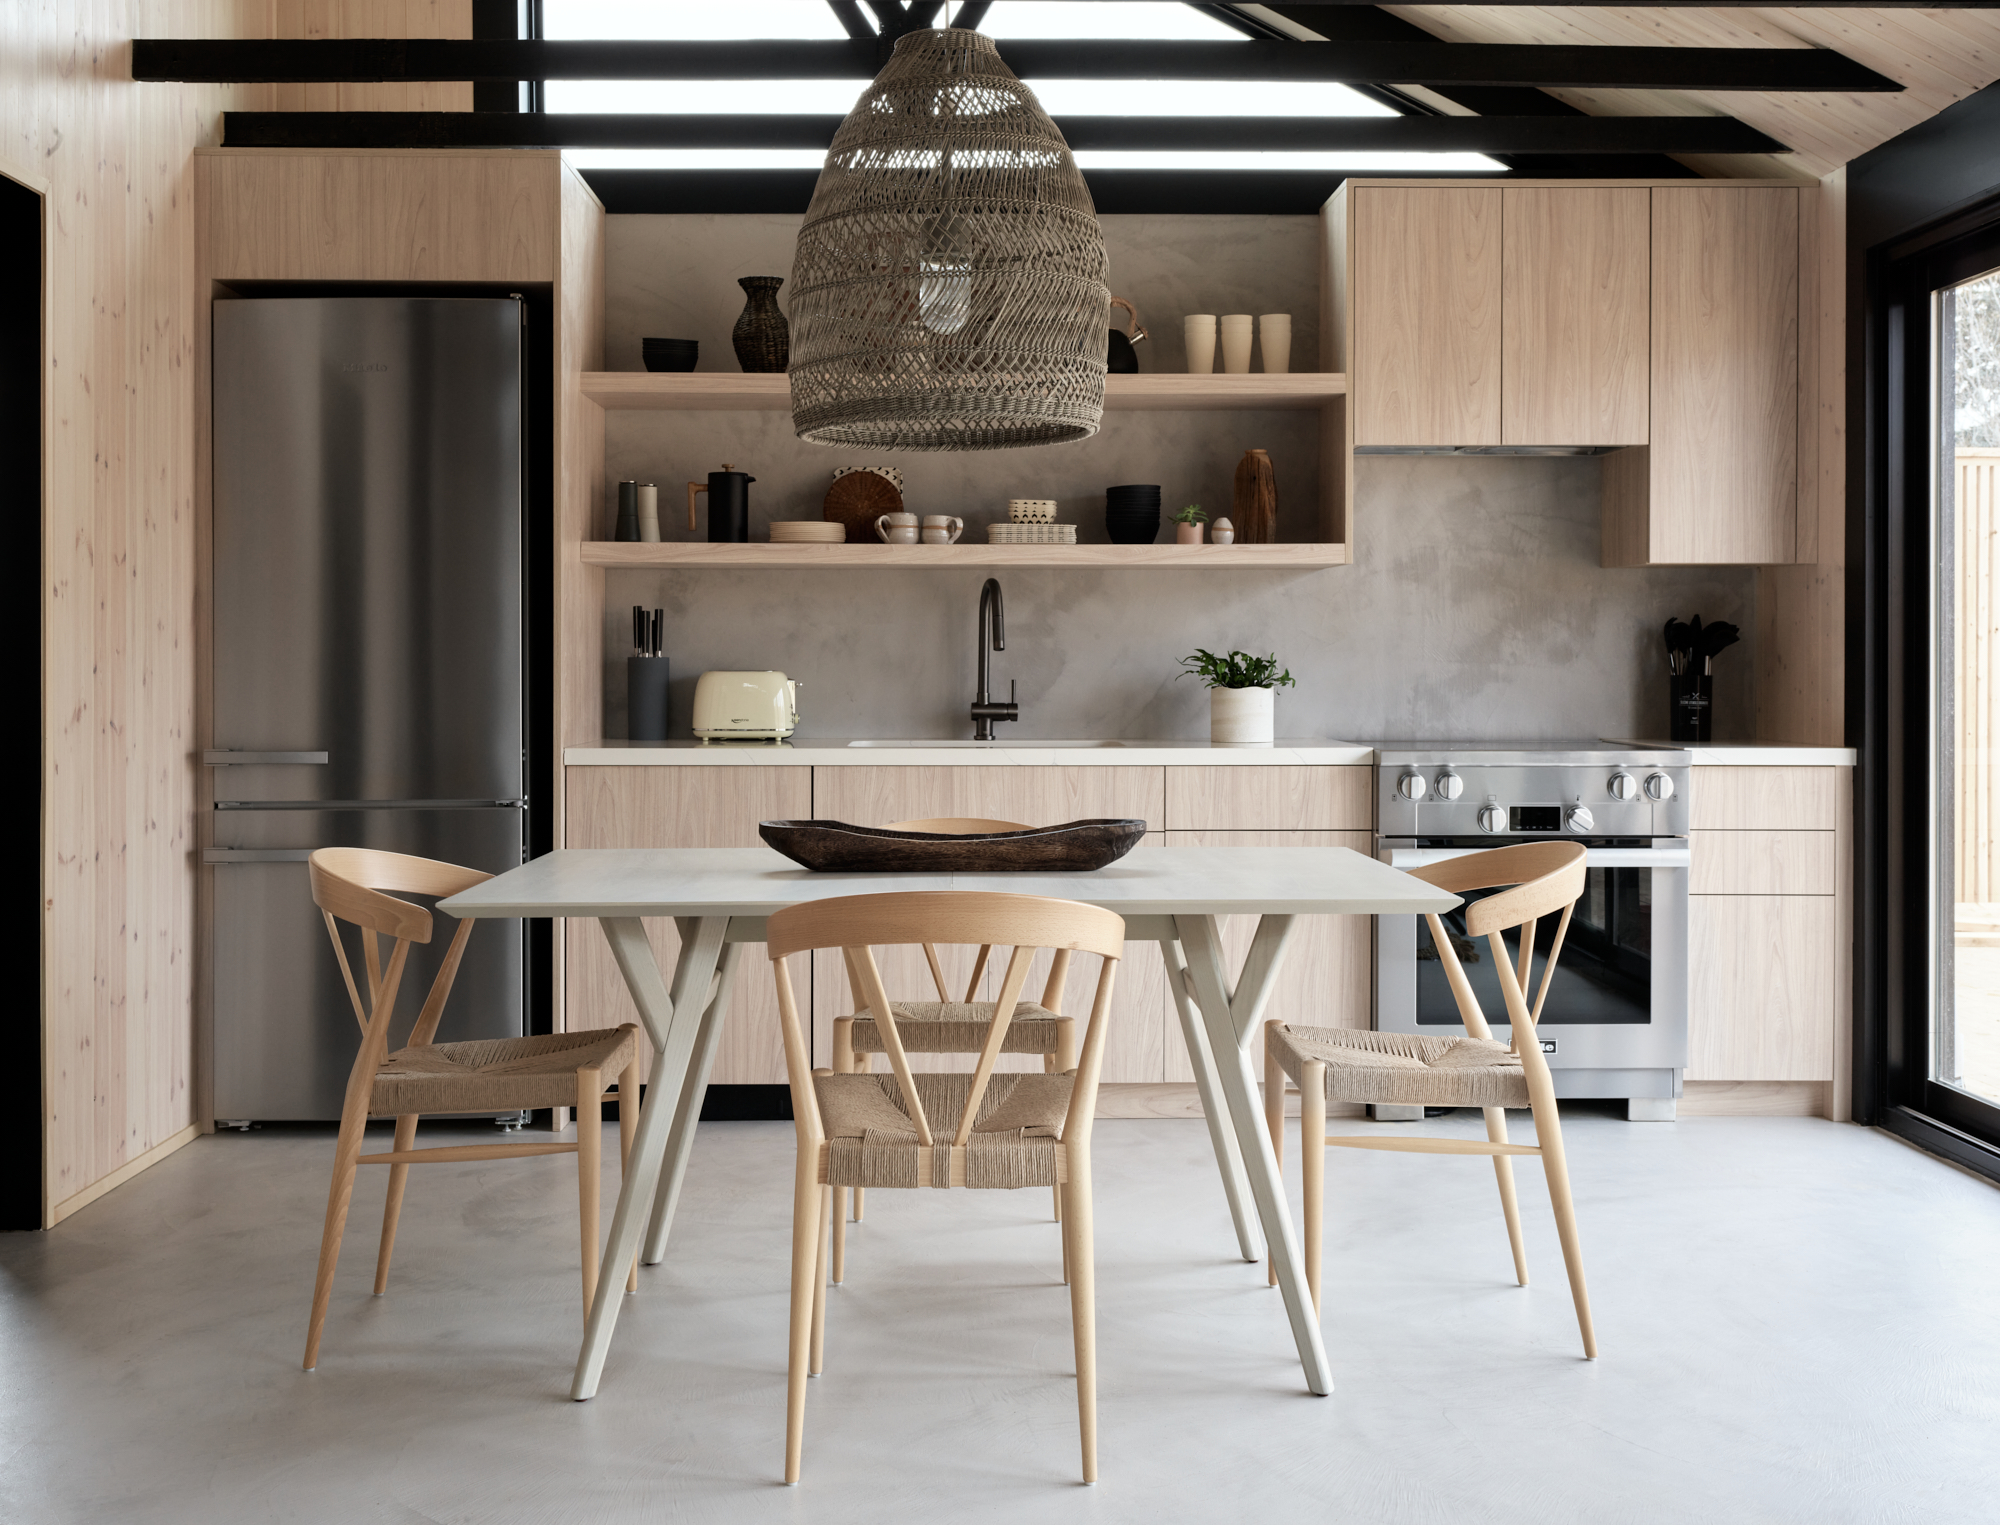 Simple luxury - inspired by the calm minimalism of Nordic design